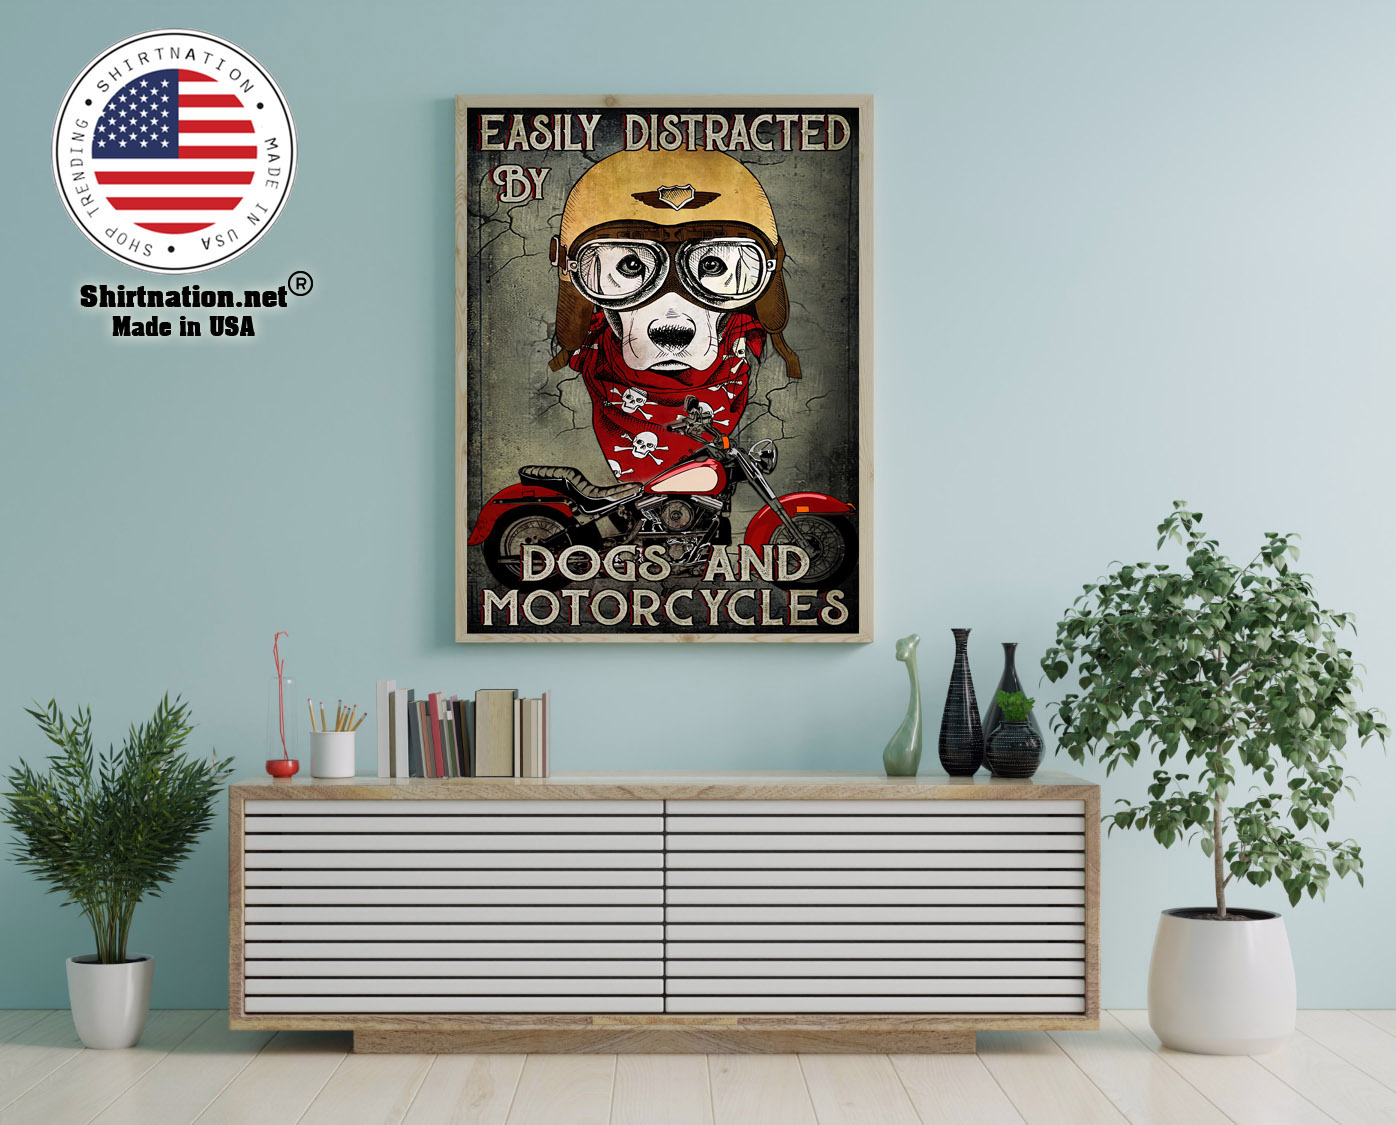 Easily distracted by dogs and motorcycles poster 12